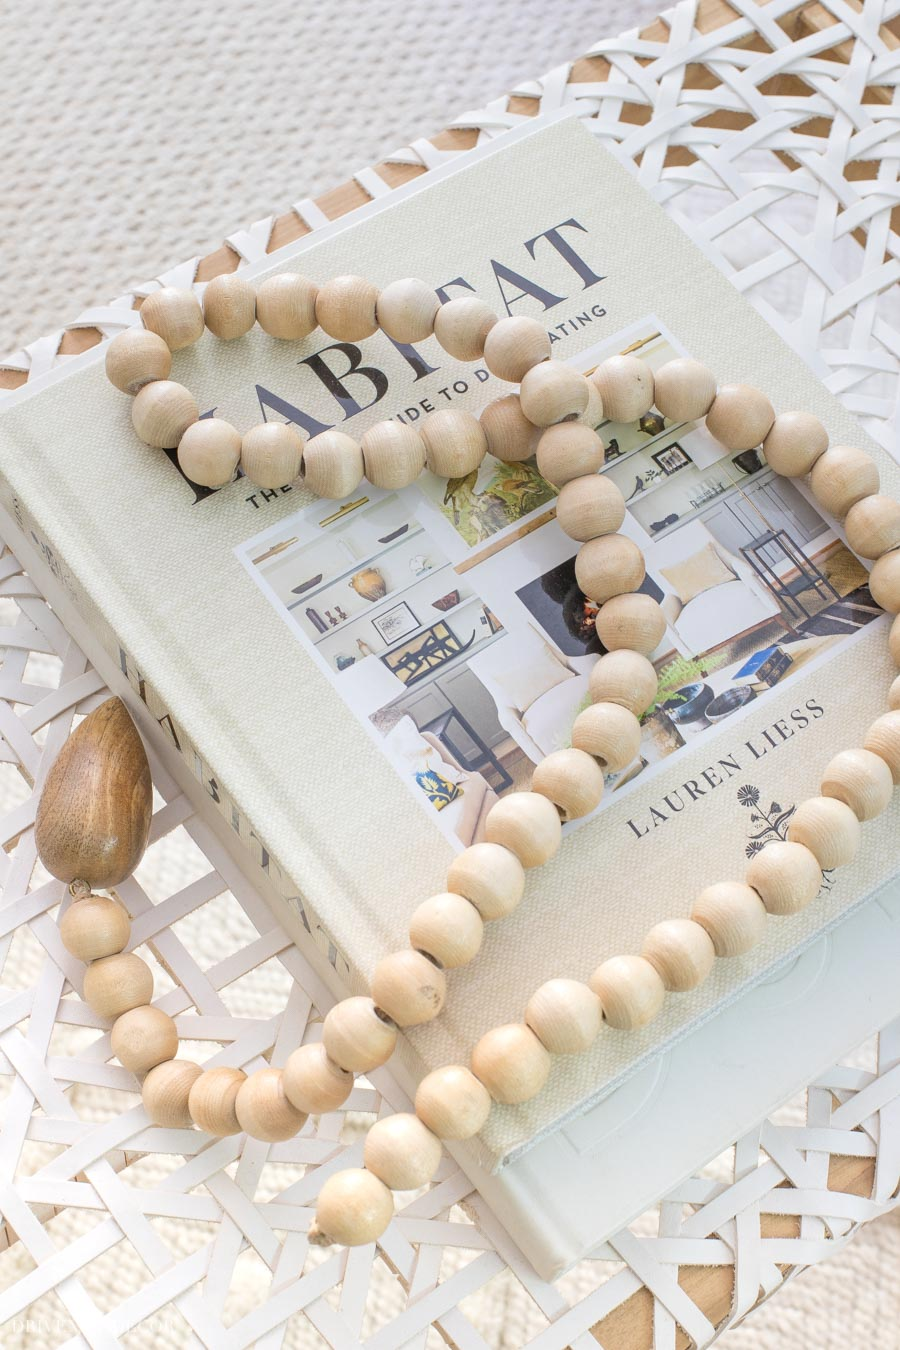 This beautiful strand of wood beads is the perfect coffee table accessory!